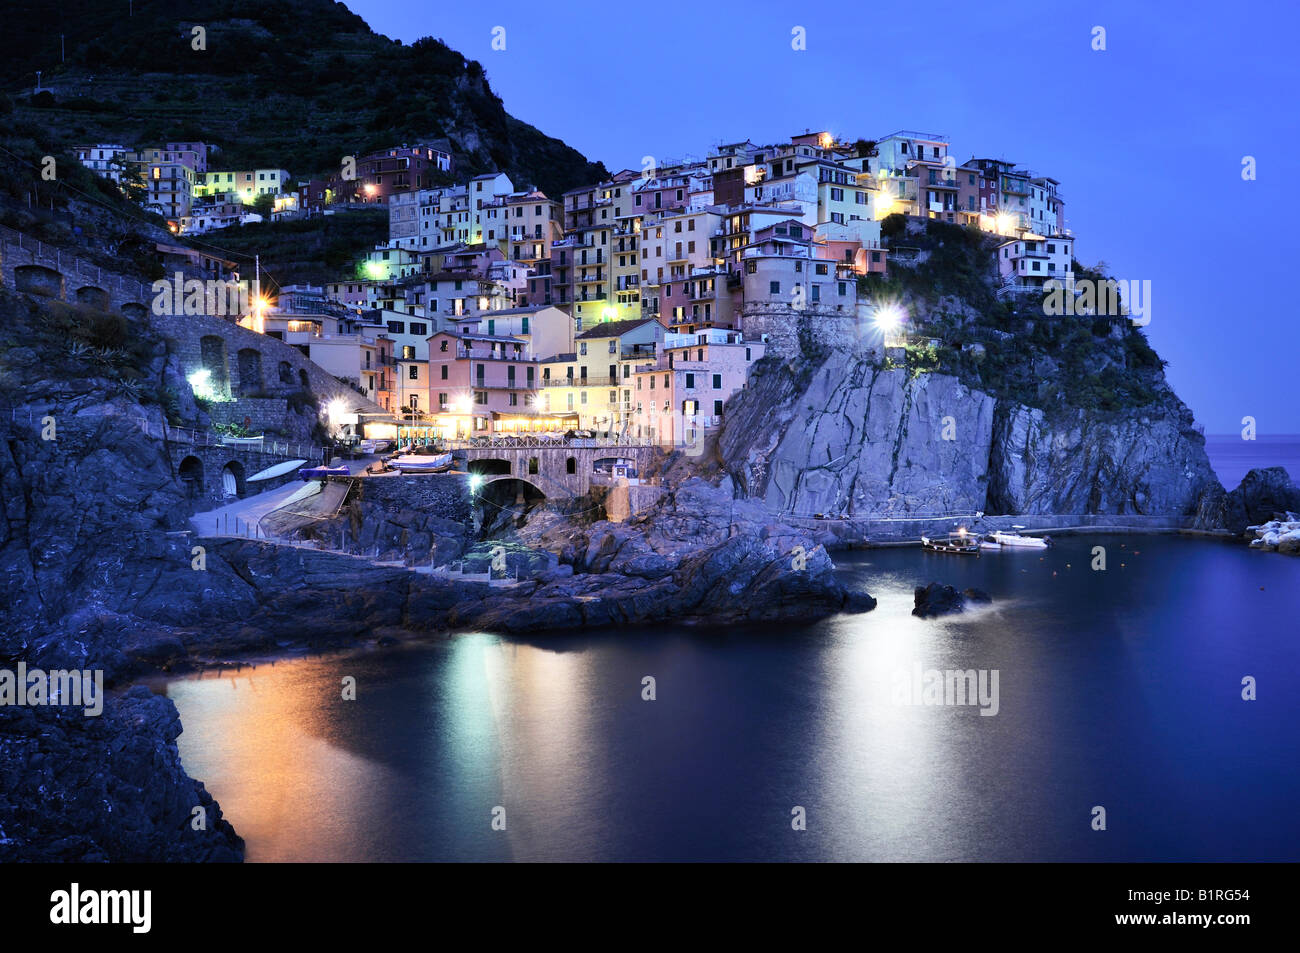 Village of Manarola nestled atop steep coastline at dusk, Liguria, Cinque Terre, Italy, Europe - Stock Image